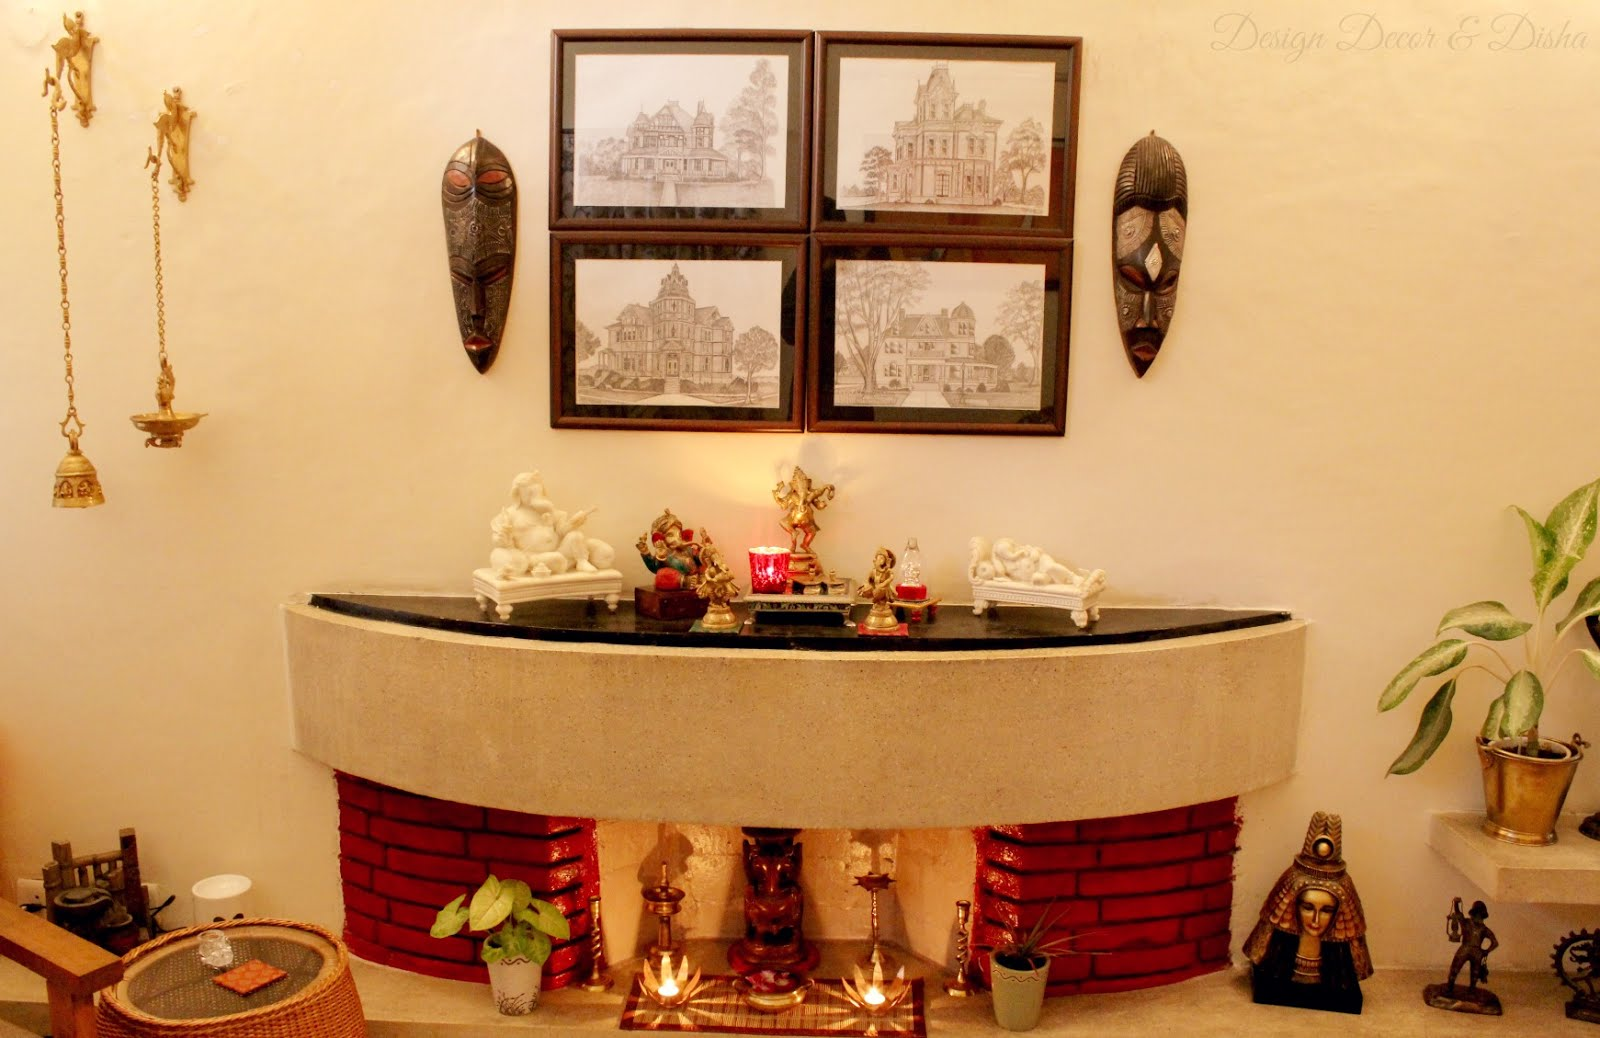 Indian Home Decoration Design Decor And Disha An Indian Design And Decor Blog Home